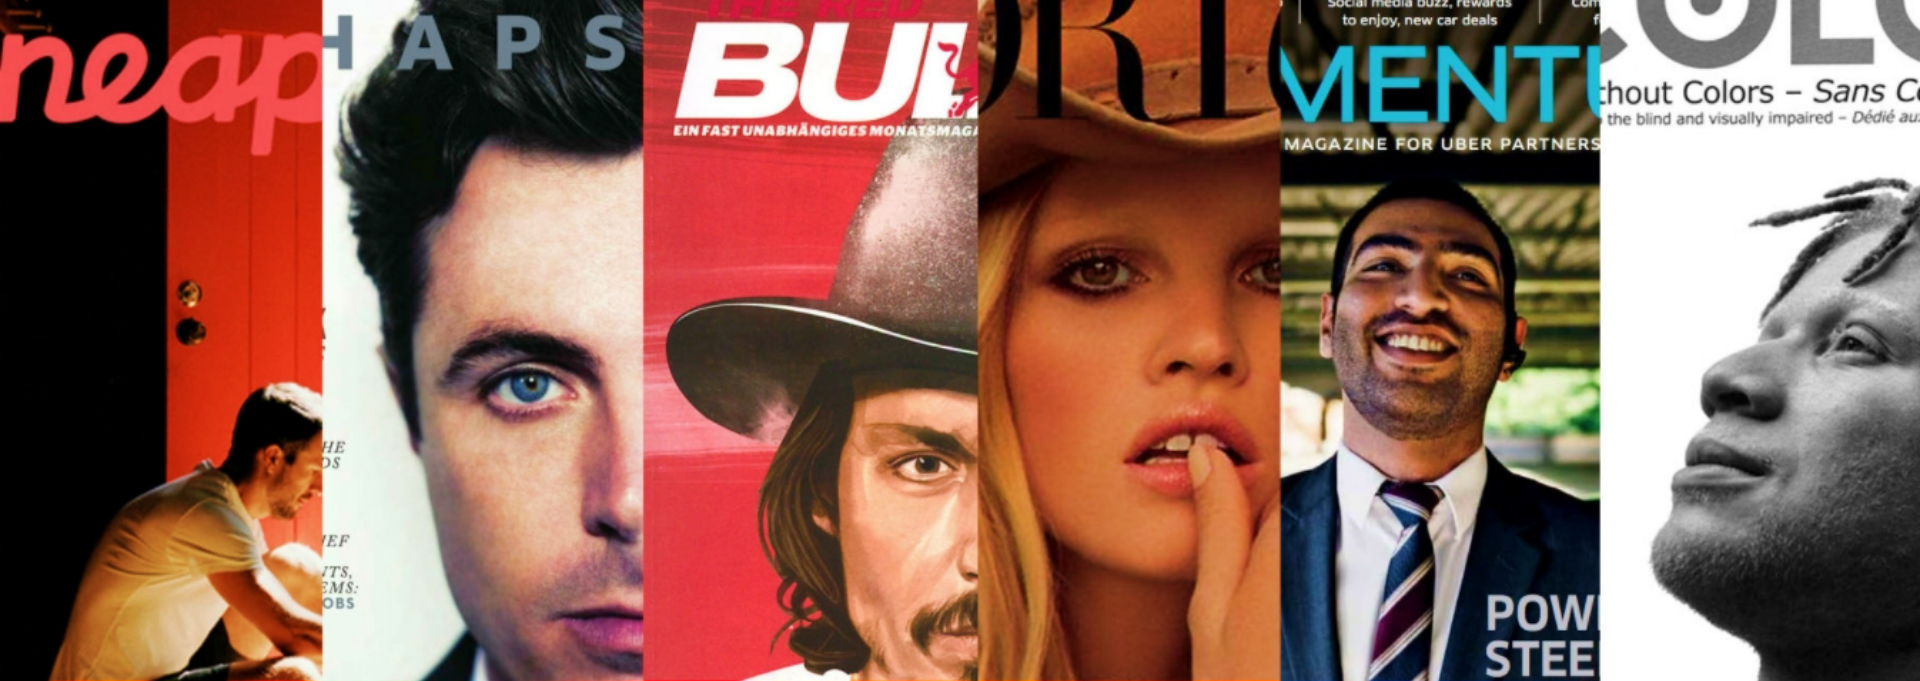 6 Luxury Brands With Print Magazines That Are Pretty Awesome